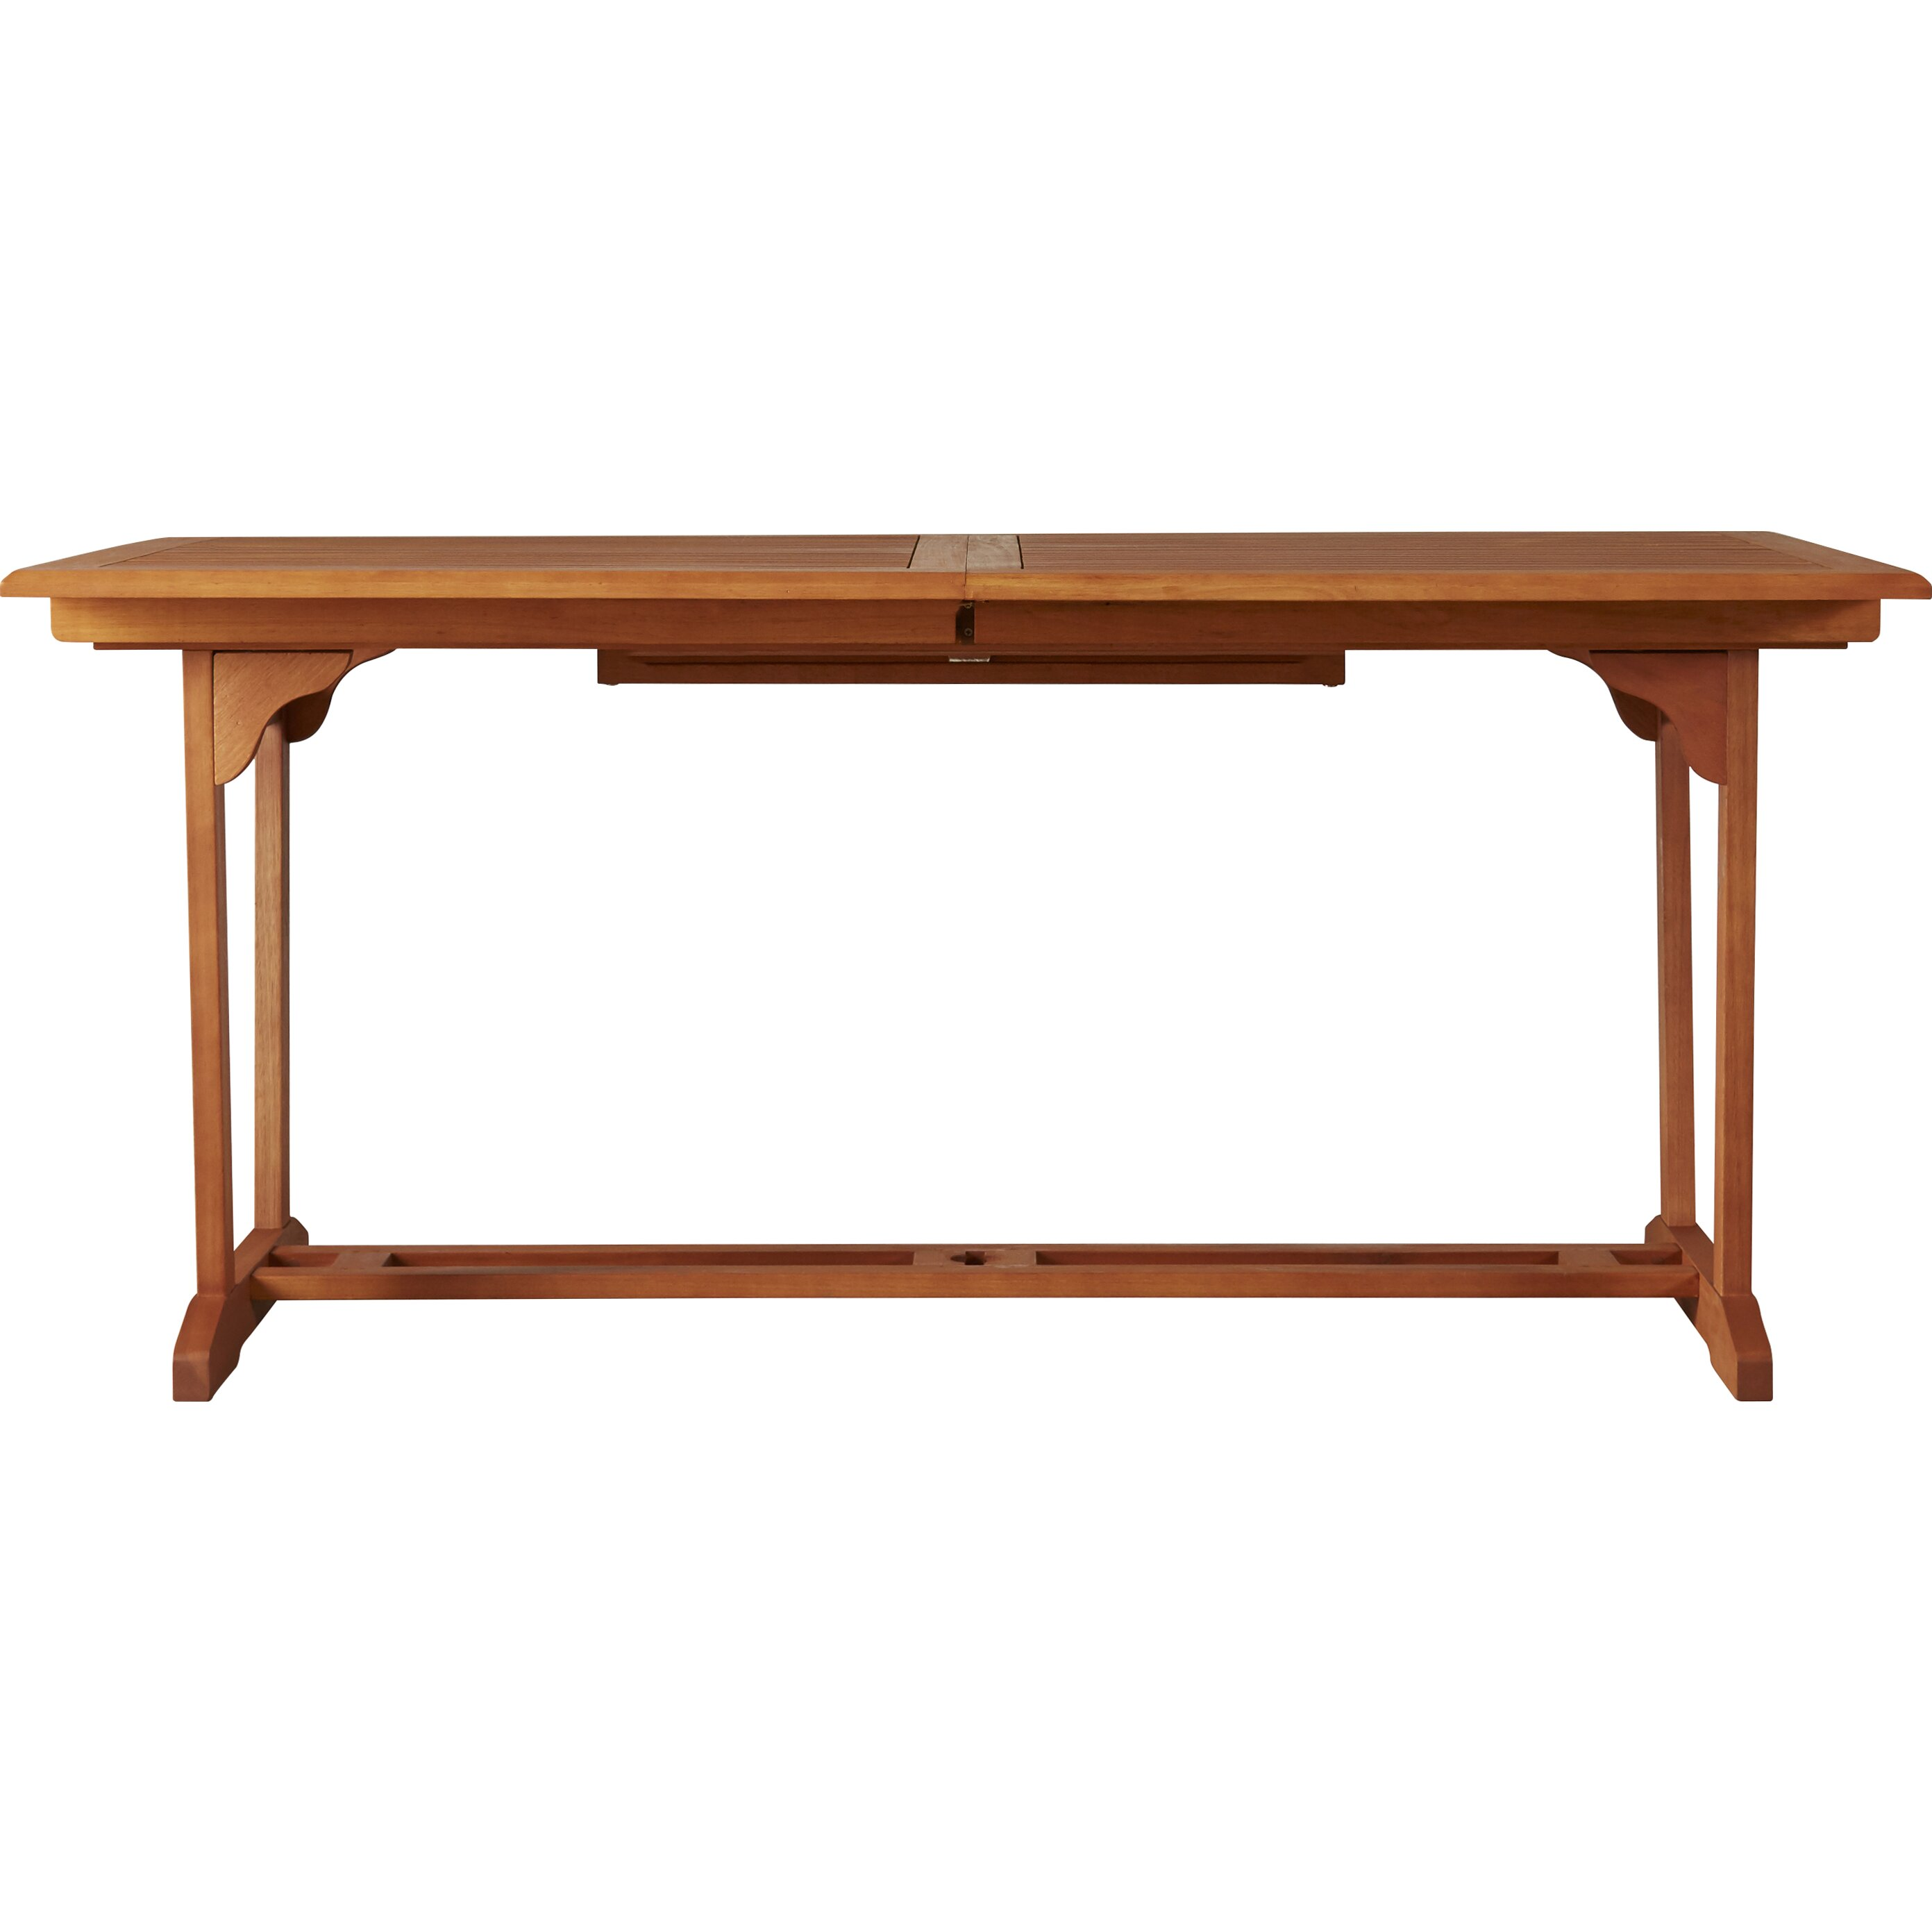 Darby Home CoC2AE Goolsby Rectangular Extension Dining Table DBHC